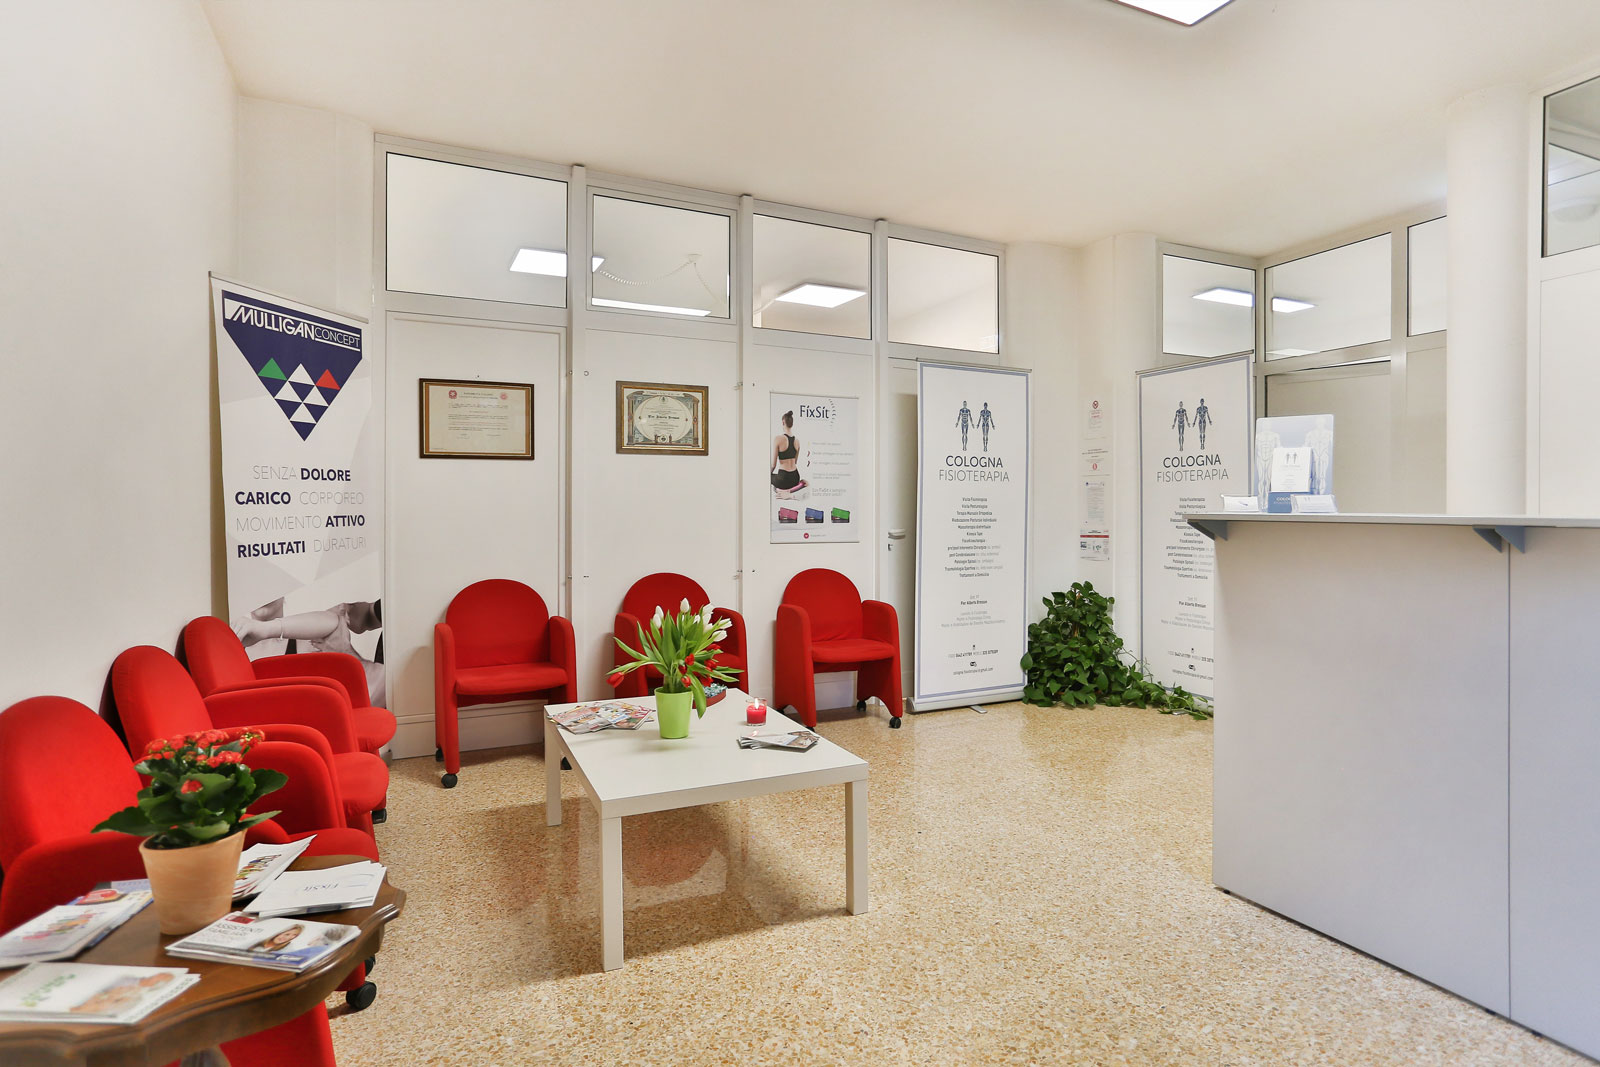 Cologna Fisioterapia Studio 3- Cologna Veneta